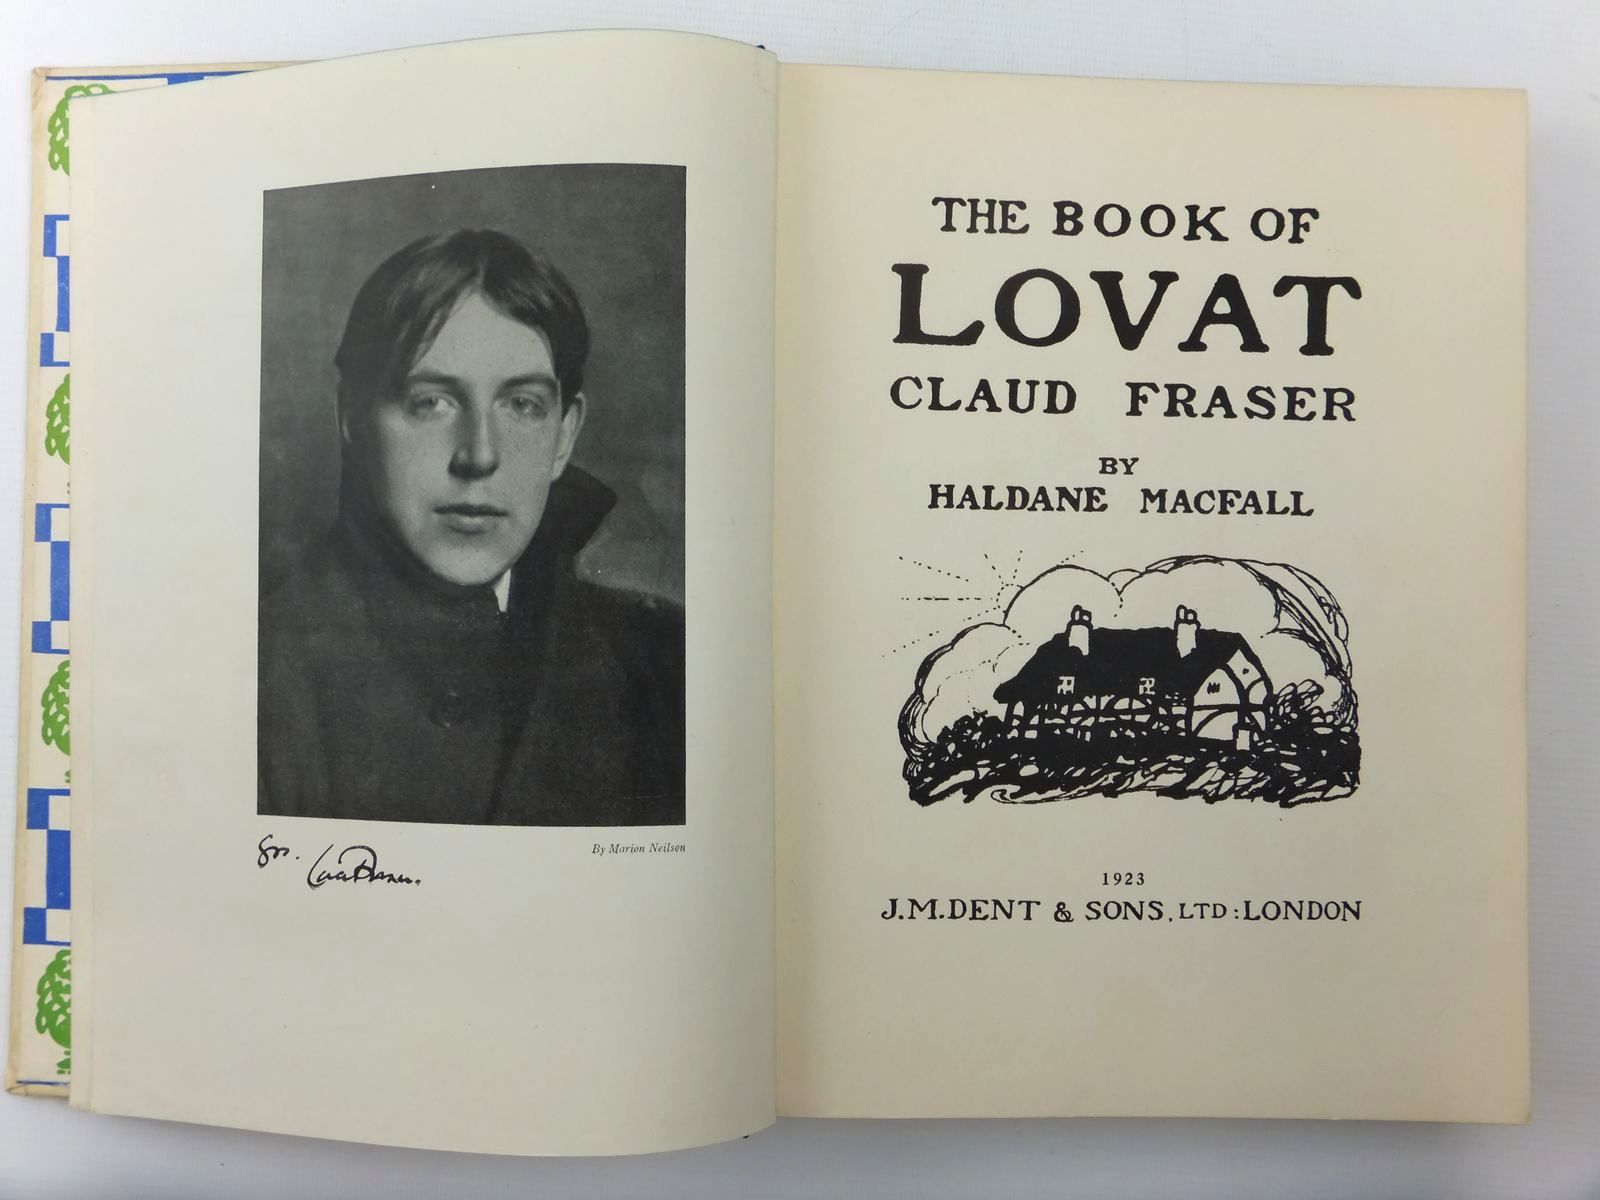 Photo of THE BOOK OF LOVAT CLAUD FRASER written by MacFall, Haldane illustrated by Fraser, Claud Lovat published by J.M. Dent & Sons Ltd. (STOCK CODE: 2123610)  for sale by Stella & Rose's Books